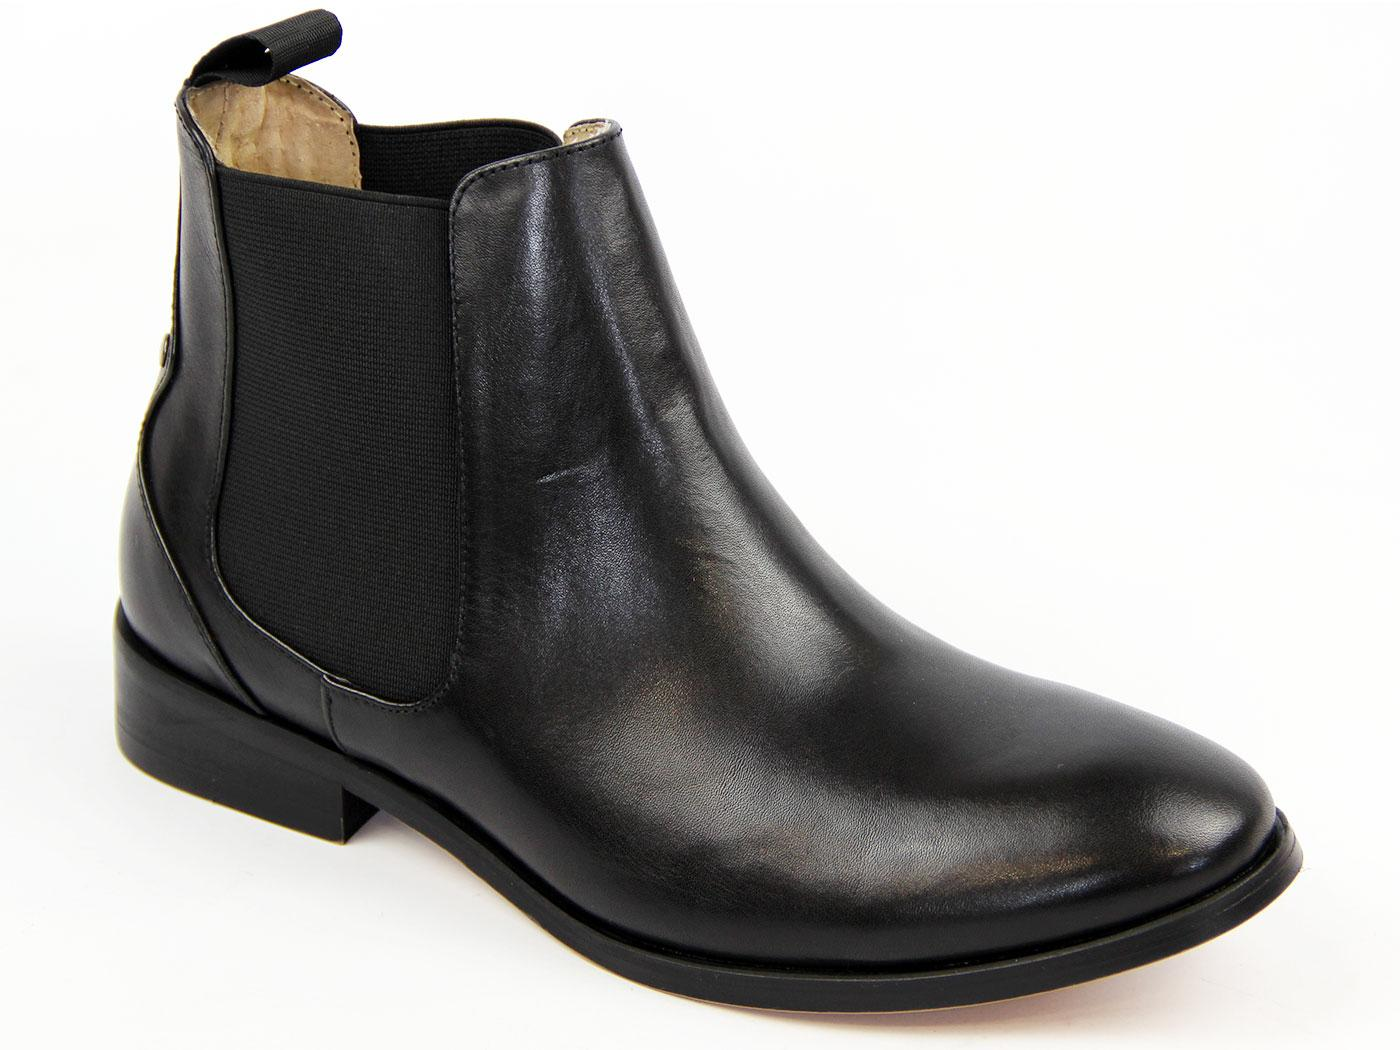 Odele Gusset LACEY Retro 60s Chelsea Boots BLACK